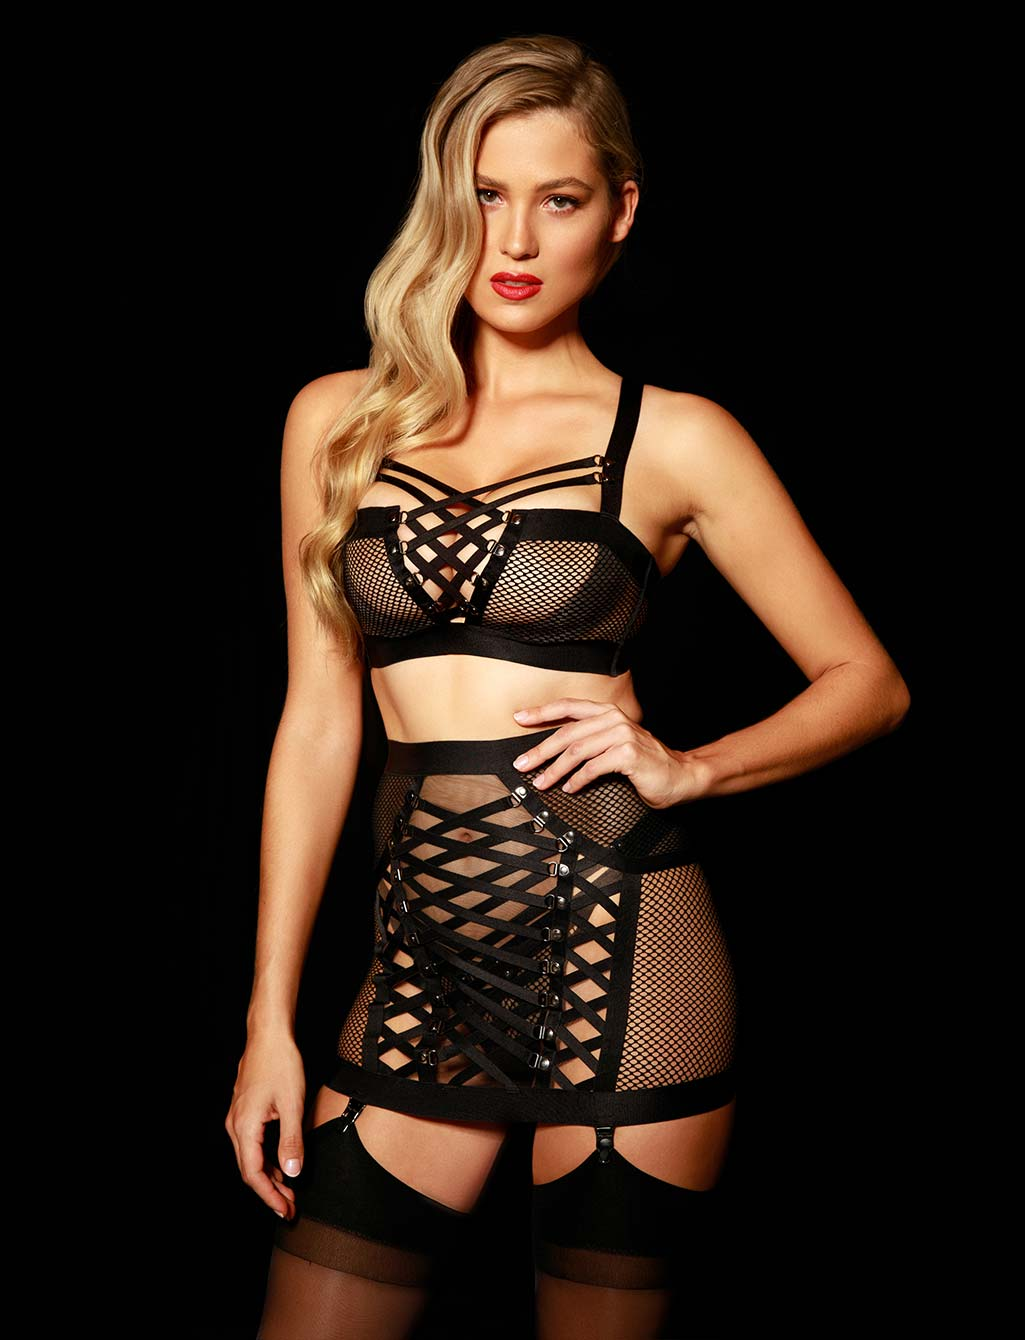 Courtney Black Lingerie Set | Shop  Lingerie Honey Birdette